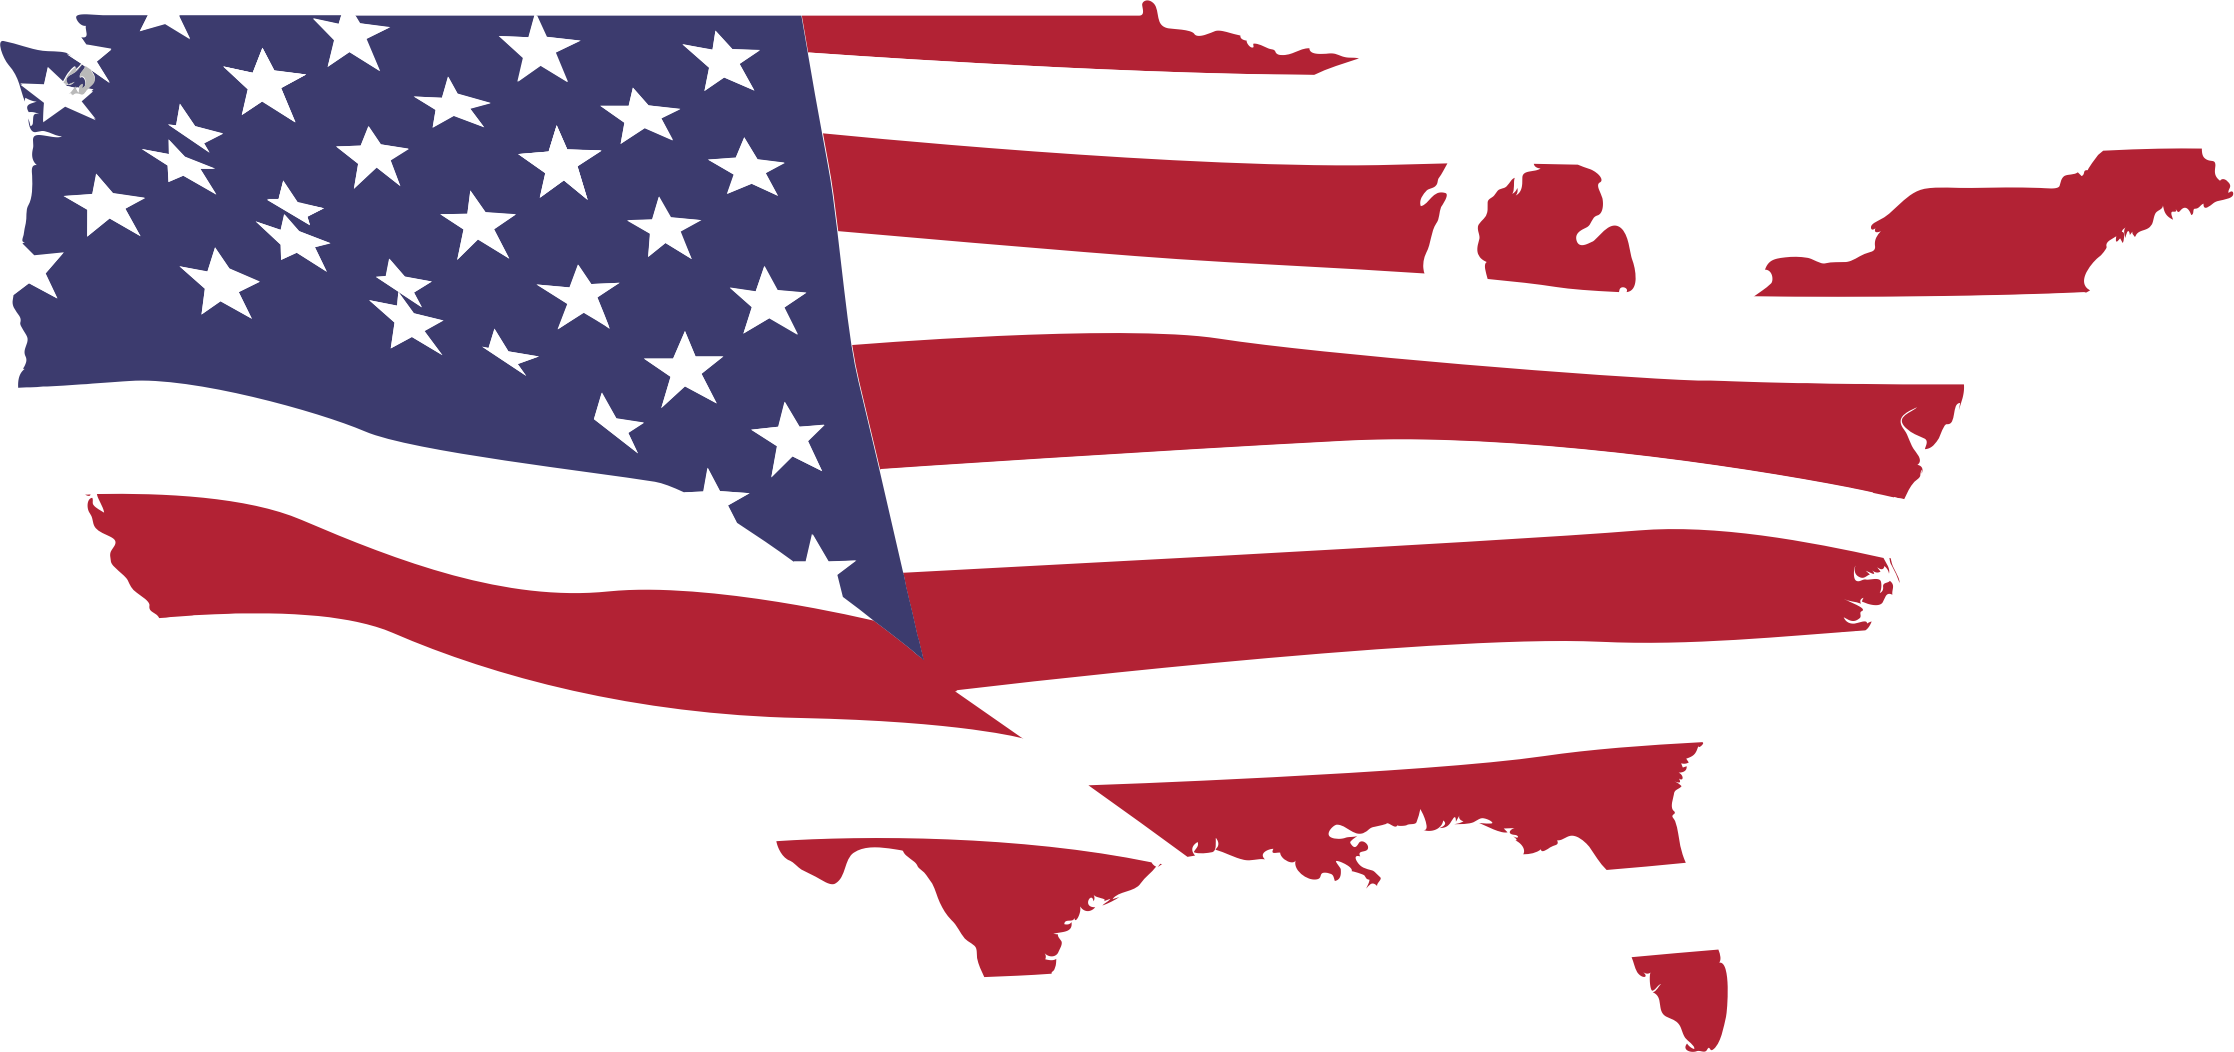 Clipart USA Map Flag Without Alaska Puerto Rico And Hawaii - Usa map with hawaii and alaska